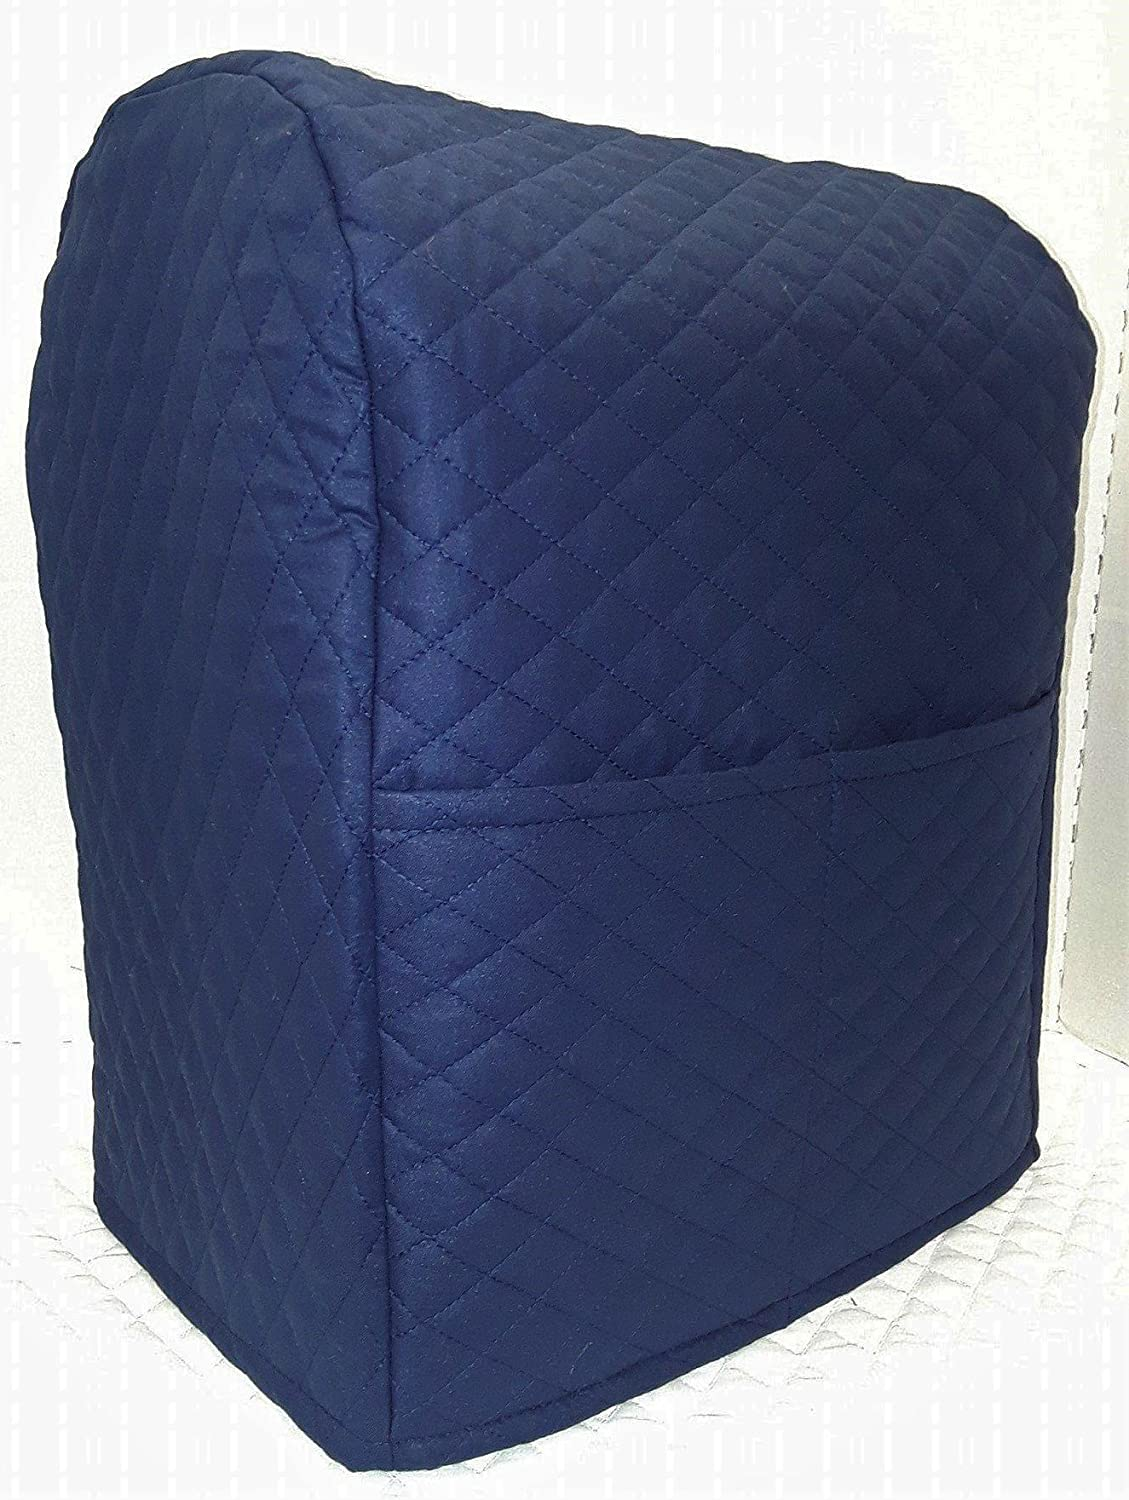 Quilted Cover for Kitchenaid 7 Quart Lift Bowl Stand Mixer (Navy Blue) by Penny's Needful Things Penny' s Needful Things 7qt